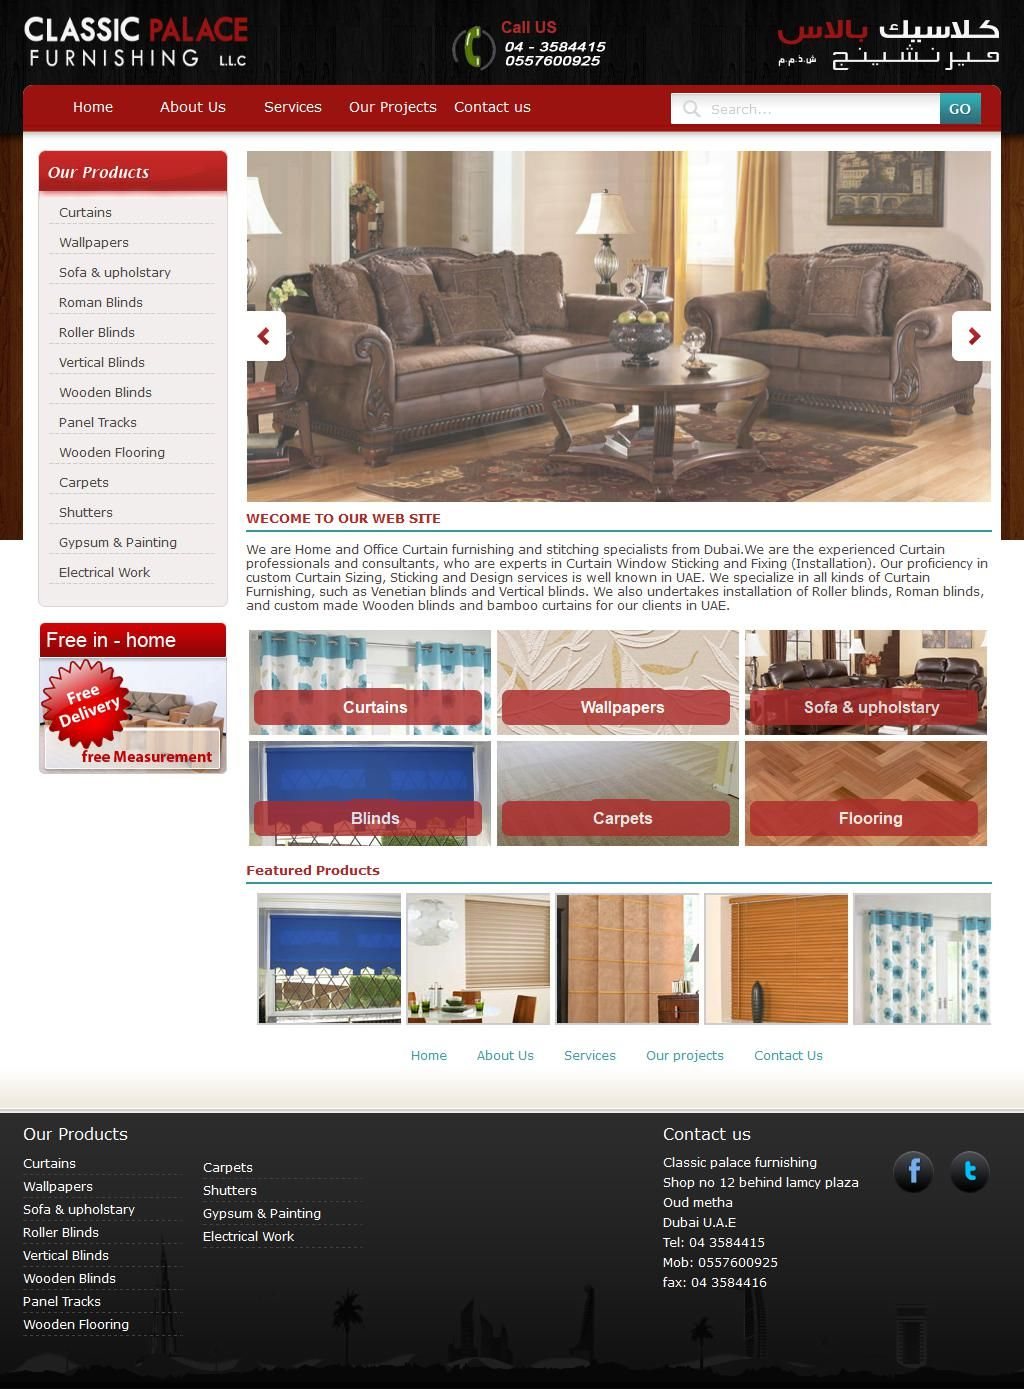 Classic Palace Furnishing, Llc Maysoon Building, 4, 17a